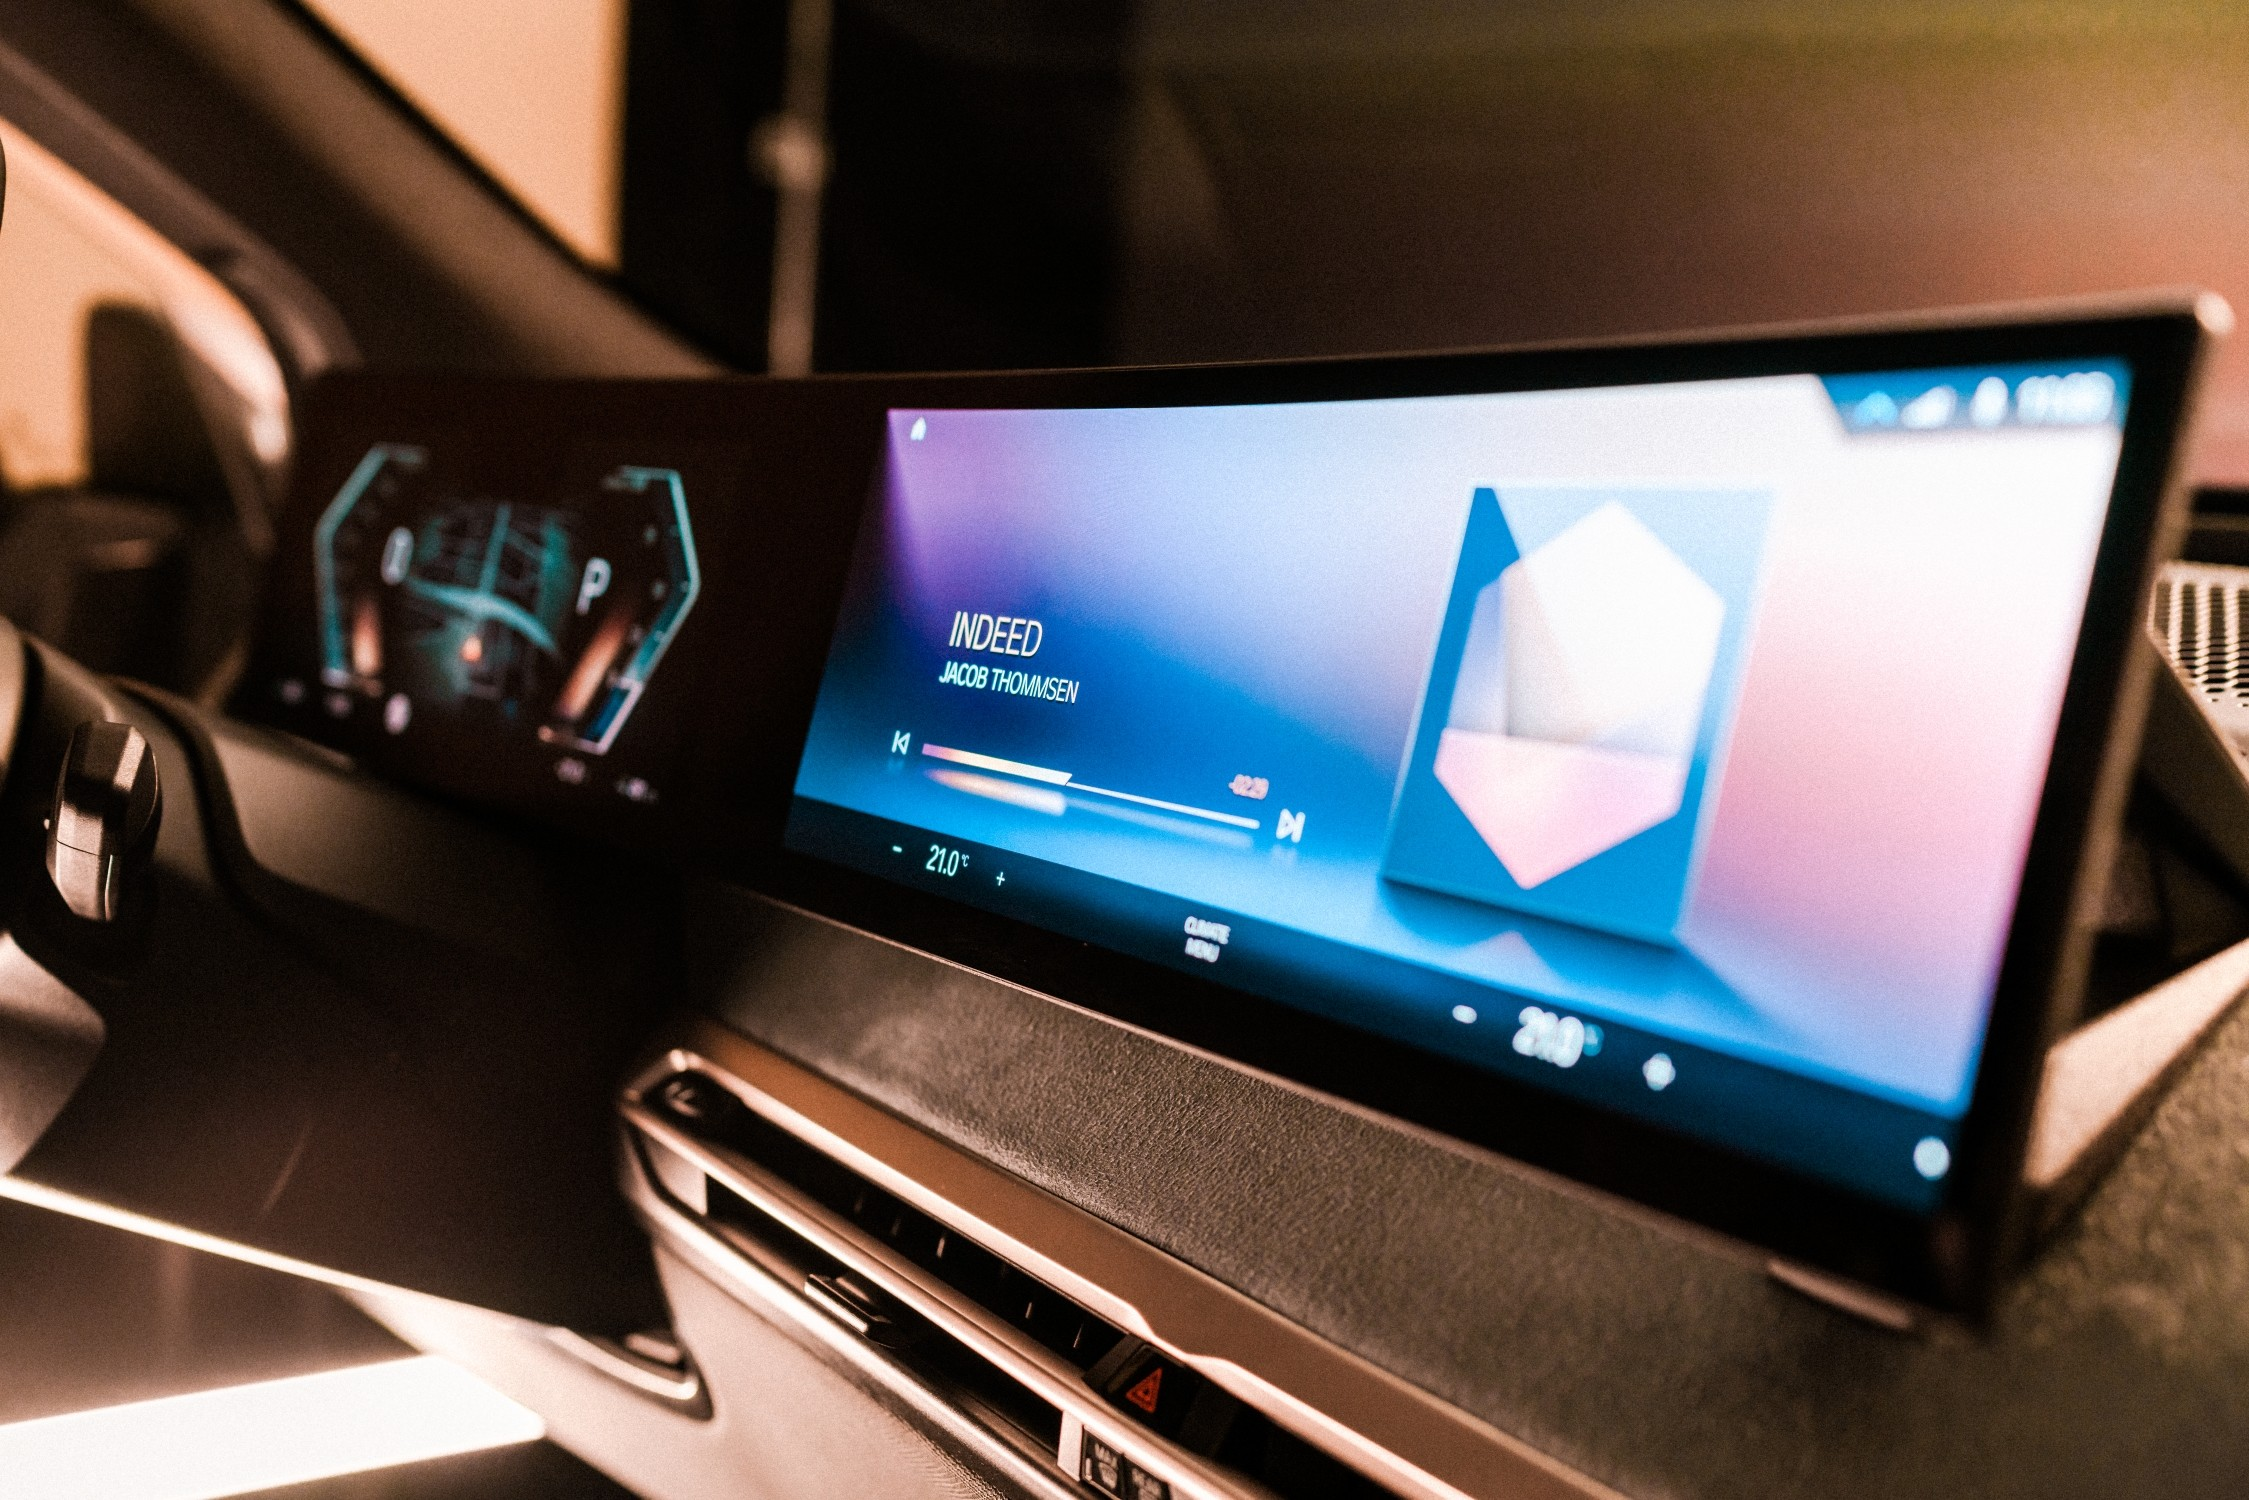 BMW will showcase its Next-gen iDrive operating system at CES